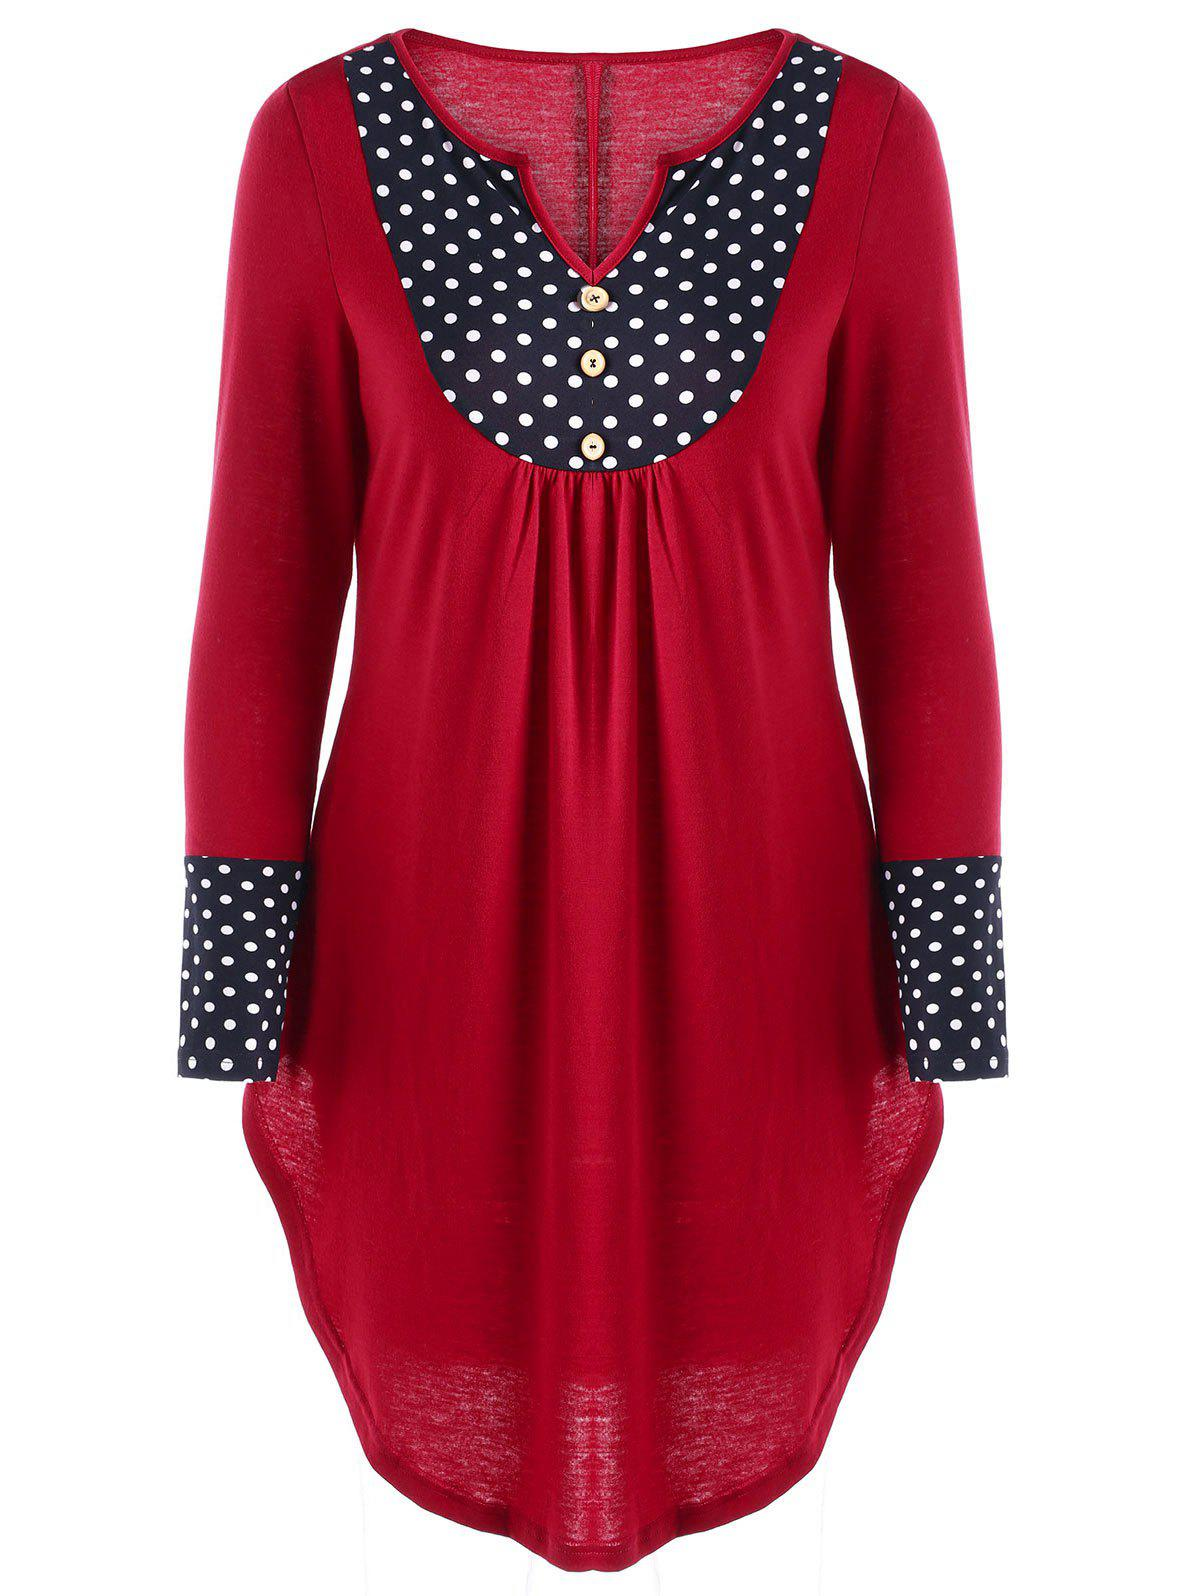 Polka Dot Curved Hem Tunic TopWOMEN<br><br>Size: L; Color: RED; Material: Polyester,Spandex; Shirt Length: Long; Sleeve Length: Full; Collar: V-Neck; Style: Casual; Pattern Type: Polka Dot; Season: Fall,Spring; Weight: 0.2700kg; Package Contents: 1 x Top;